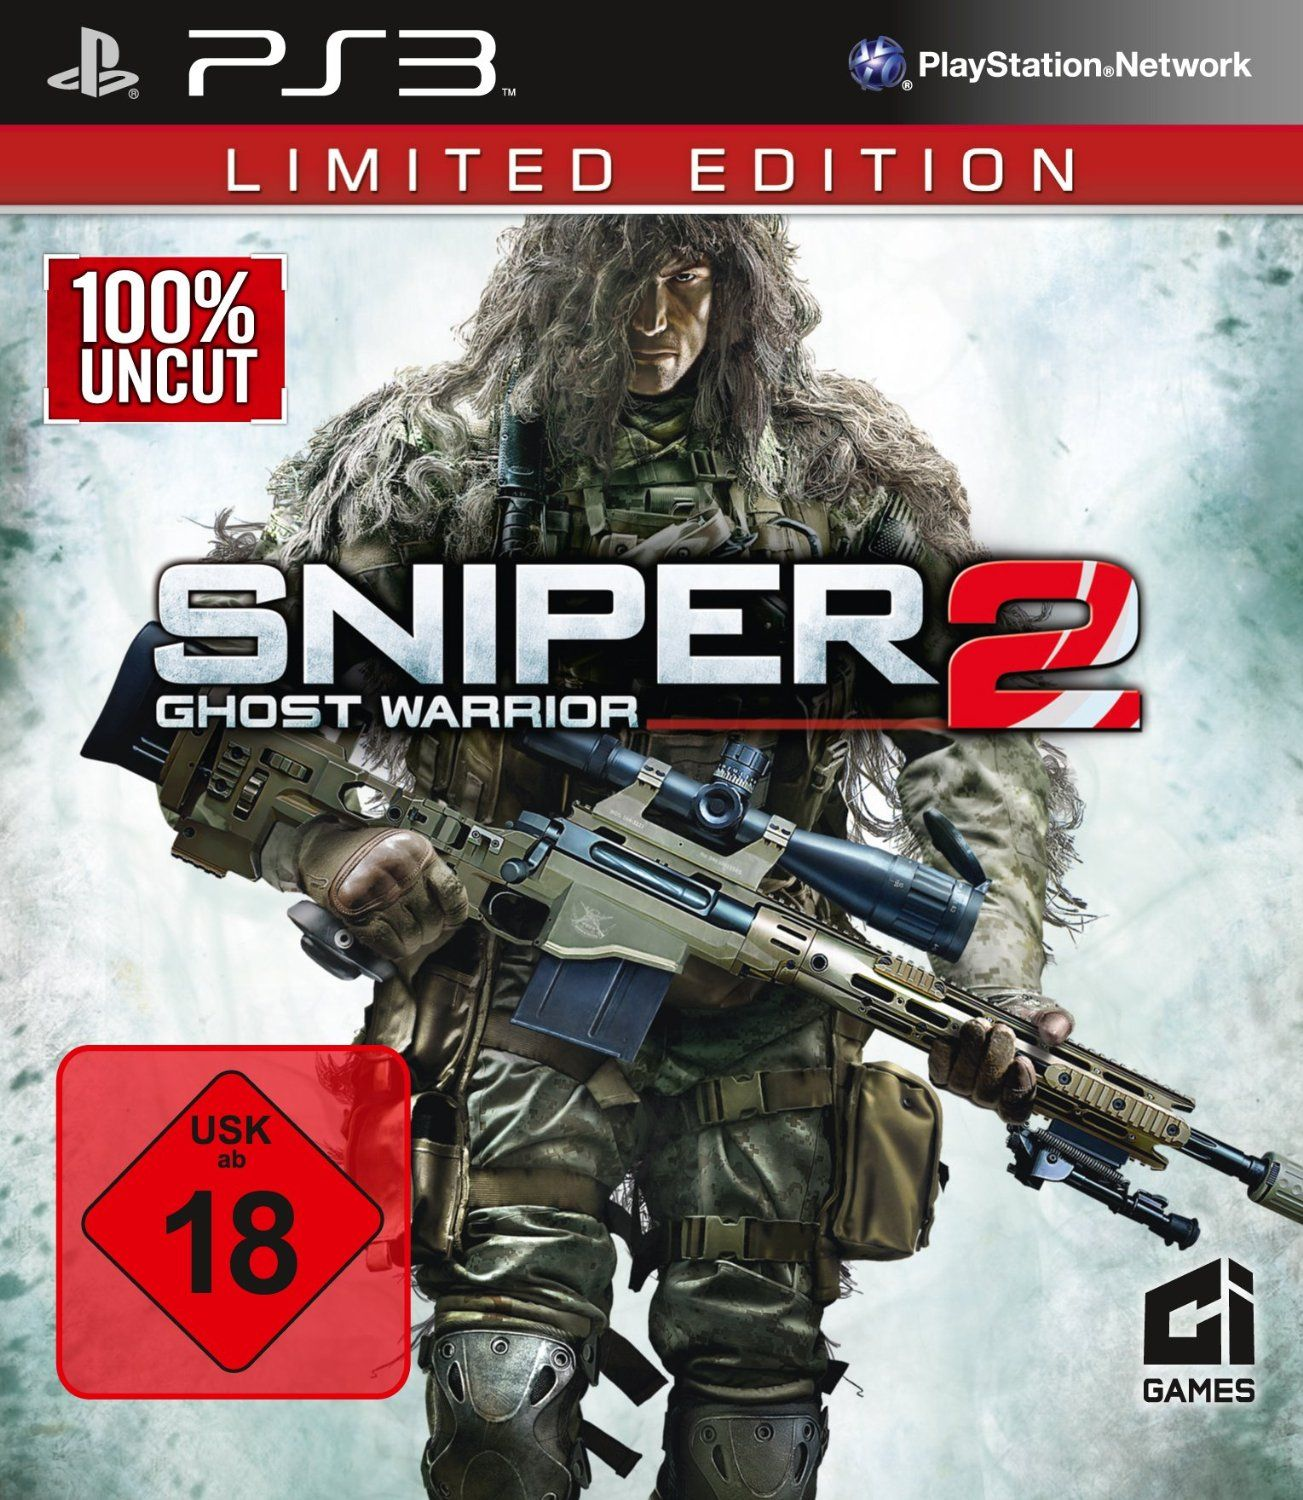 Sniper Ghost Warrior 2 Limited Edition 100 Uncut Playstation 3 Amazon De Games Sniper Ghost Warrior 2 Jogos Ps3 Jogos Eletronicos